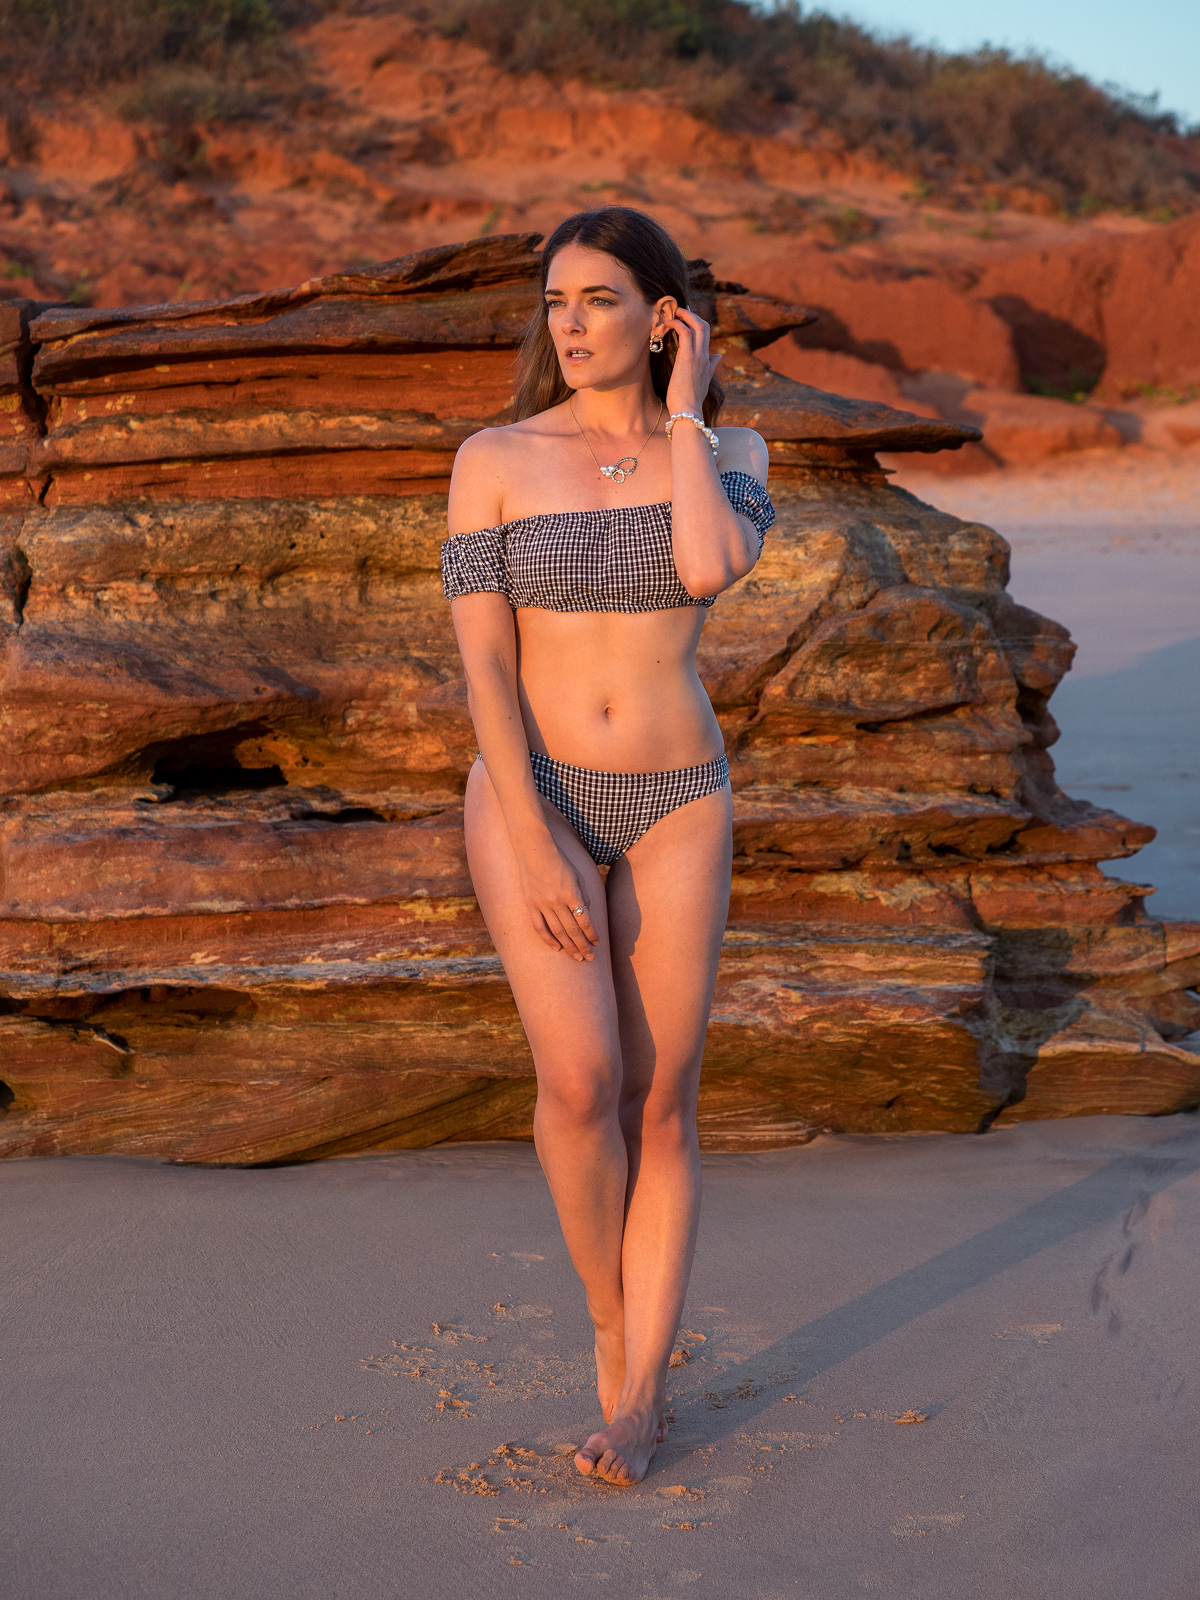 Allure South Sea Pearls Broome Inspiring Wit fashion blogger Jenelle Witty at Reddell Beach wearing gingham swim set